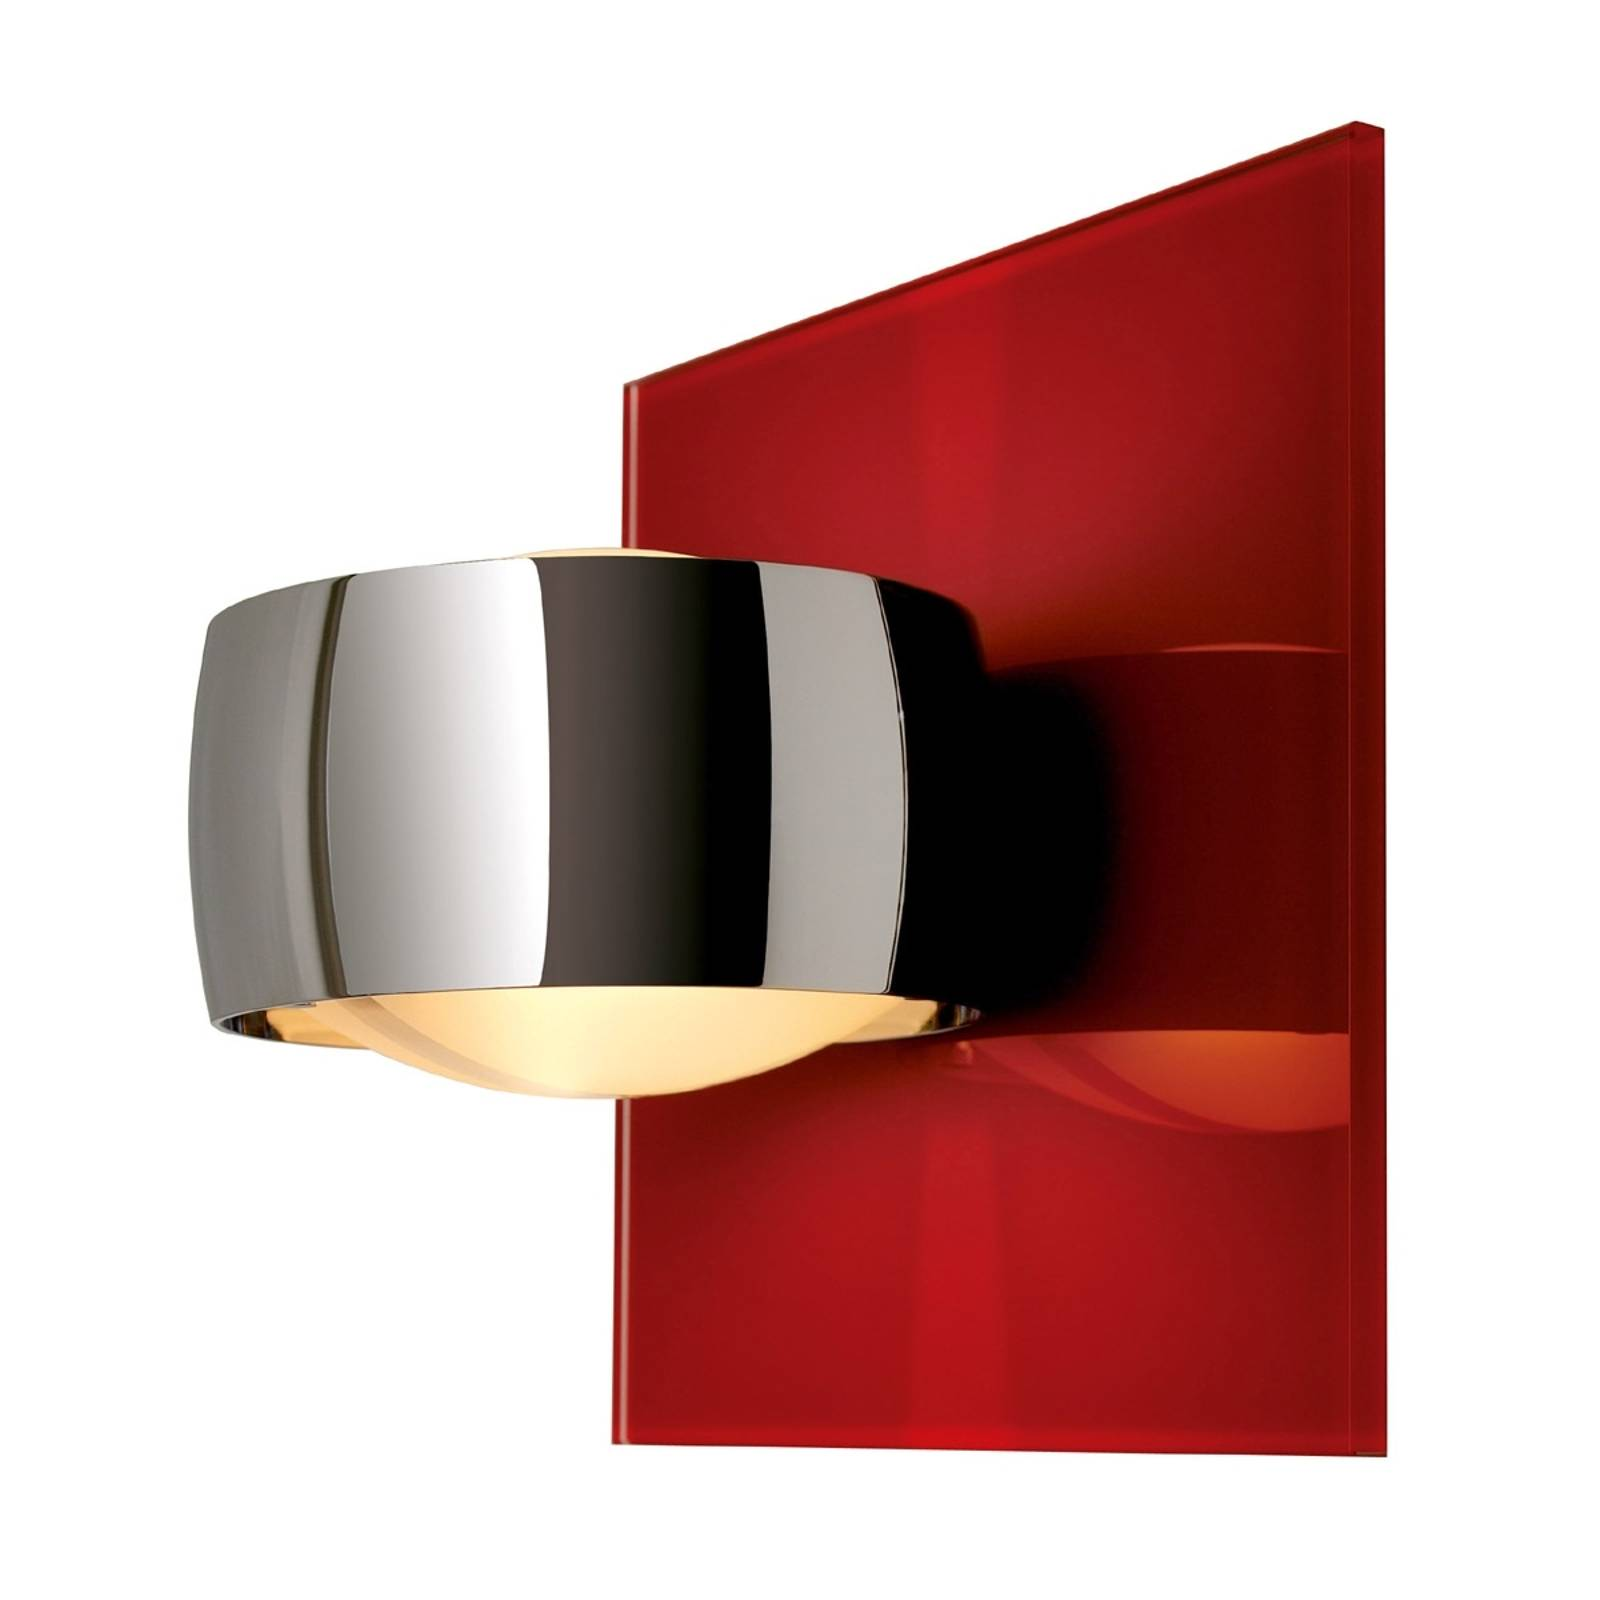 Decorative wall light GRACE UNLIMITED red/chrome from Oligo